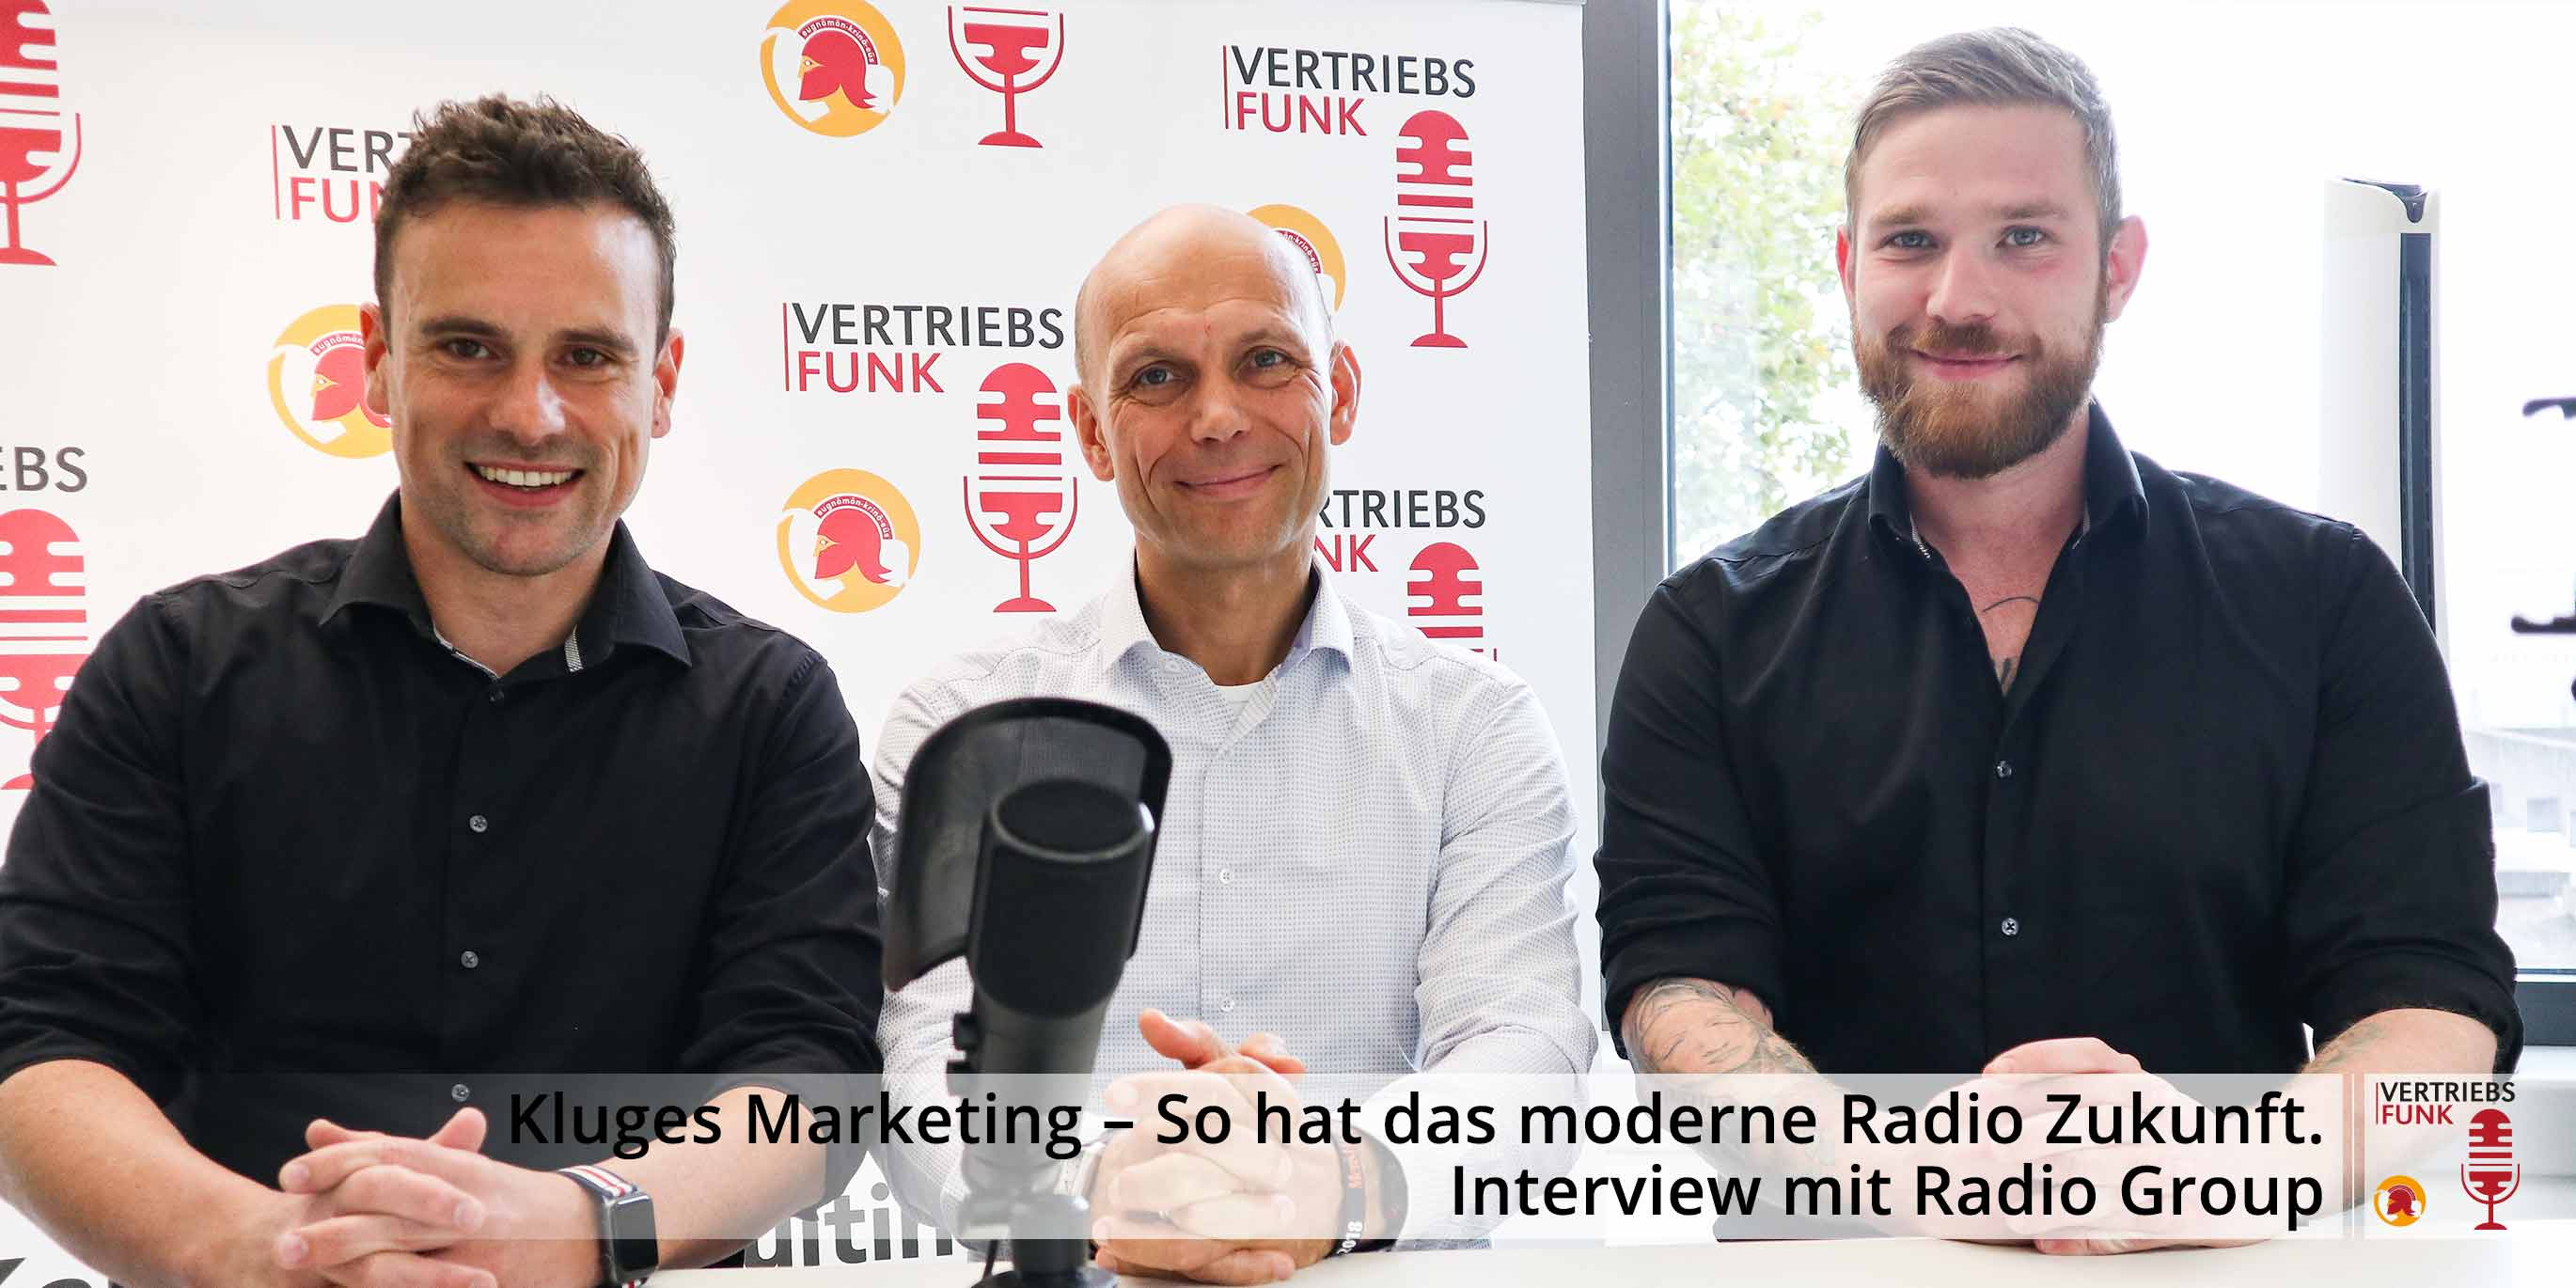 VertriebsFunk Episode 264_Kluges Marketing - So hat das moderne Radio Zukunft_Interview mit Radio Group_AB